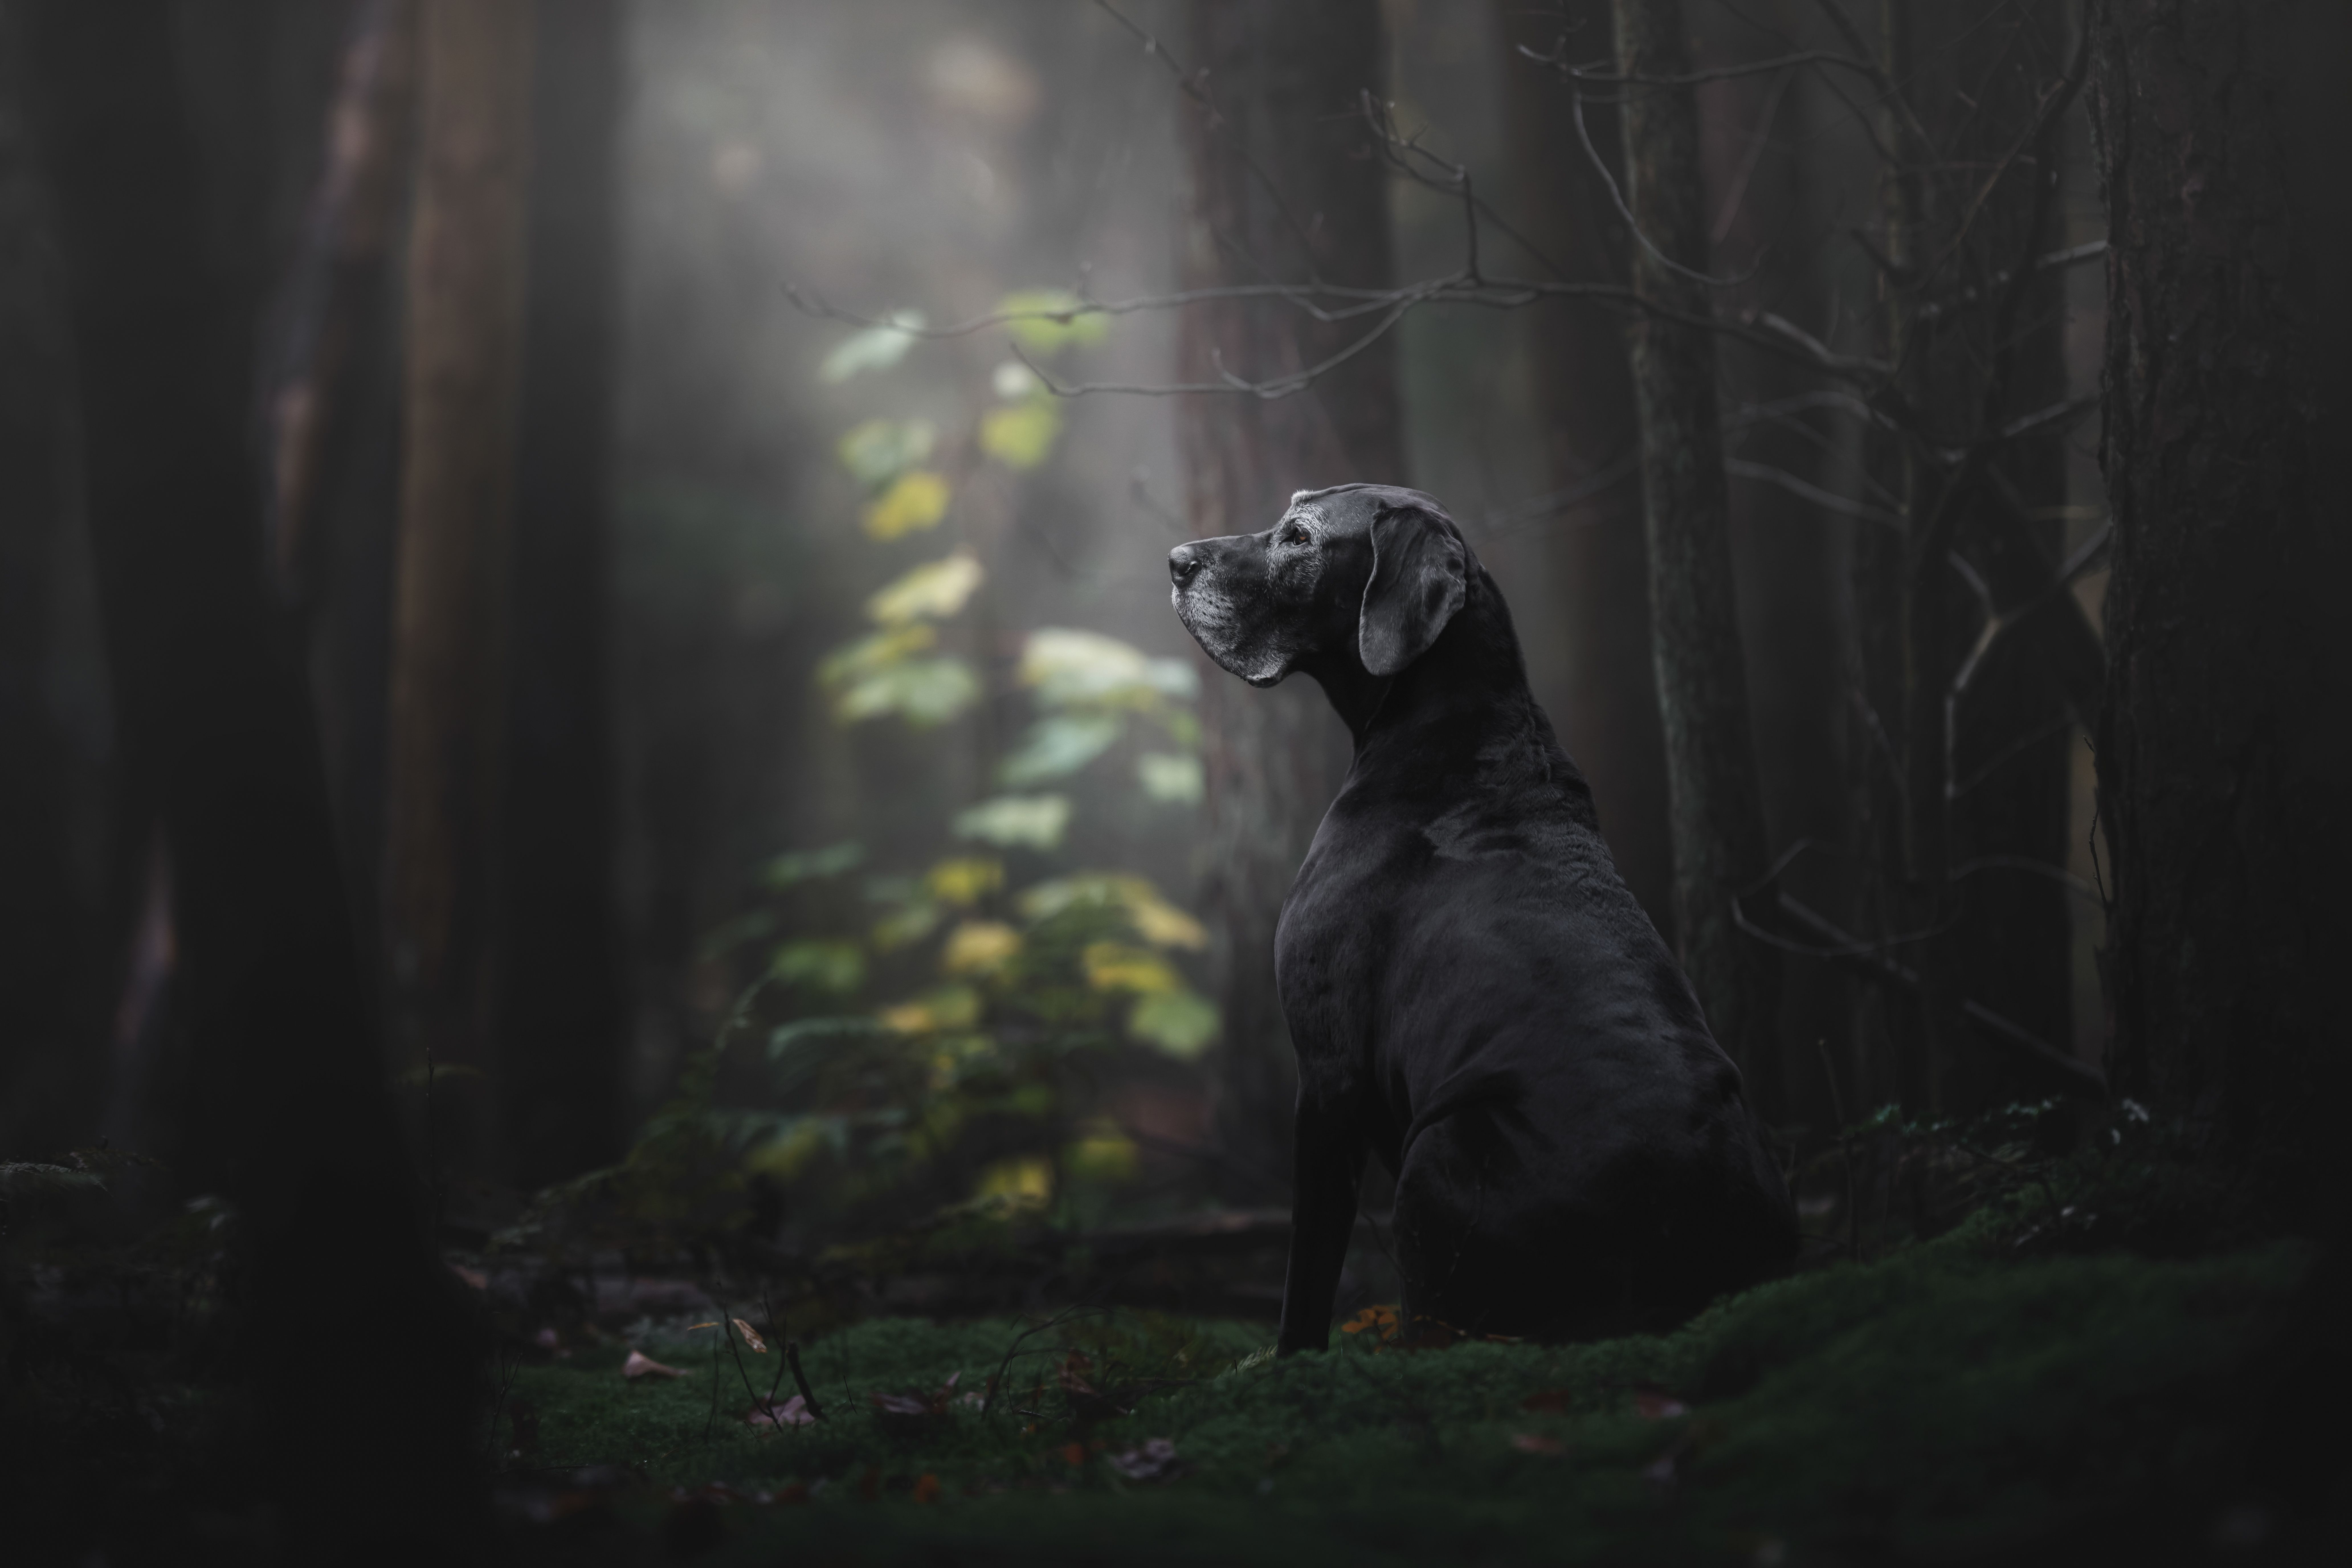 Winning Kennel Club Images Celebrate Dogs From All Walks Of Life